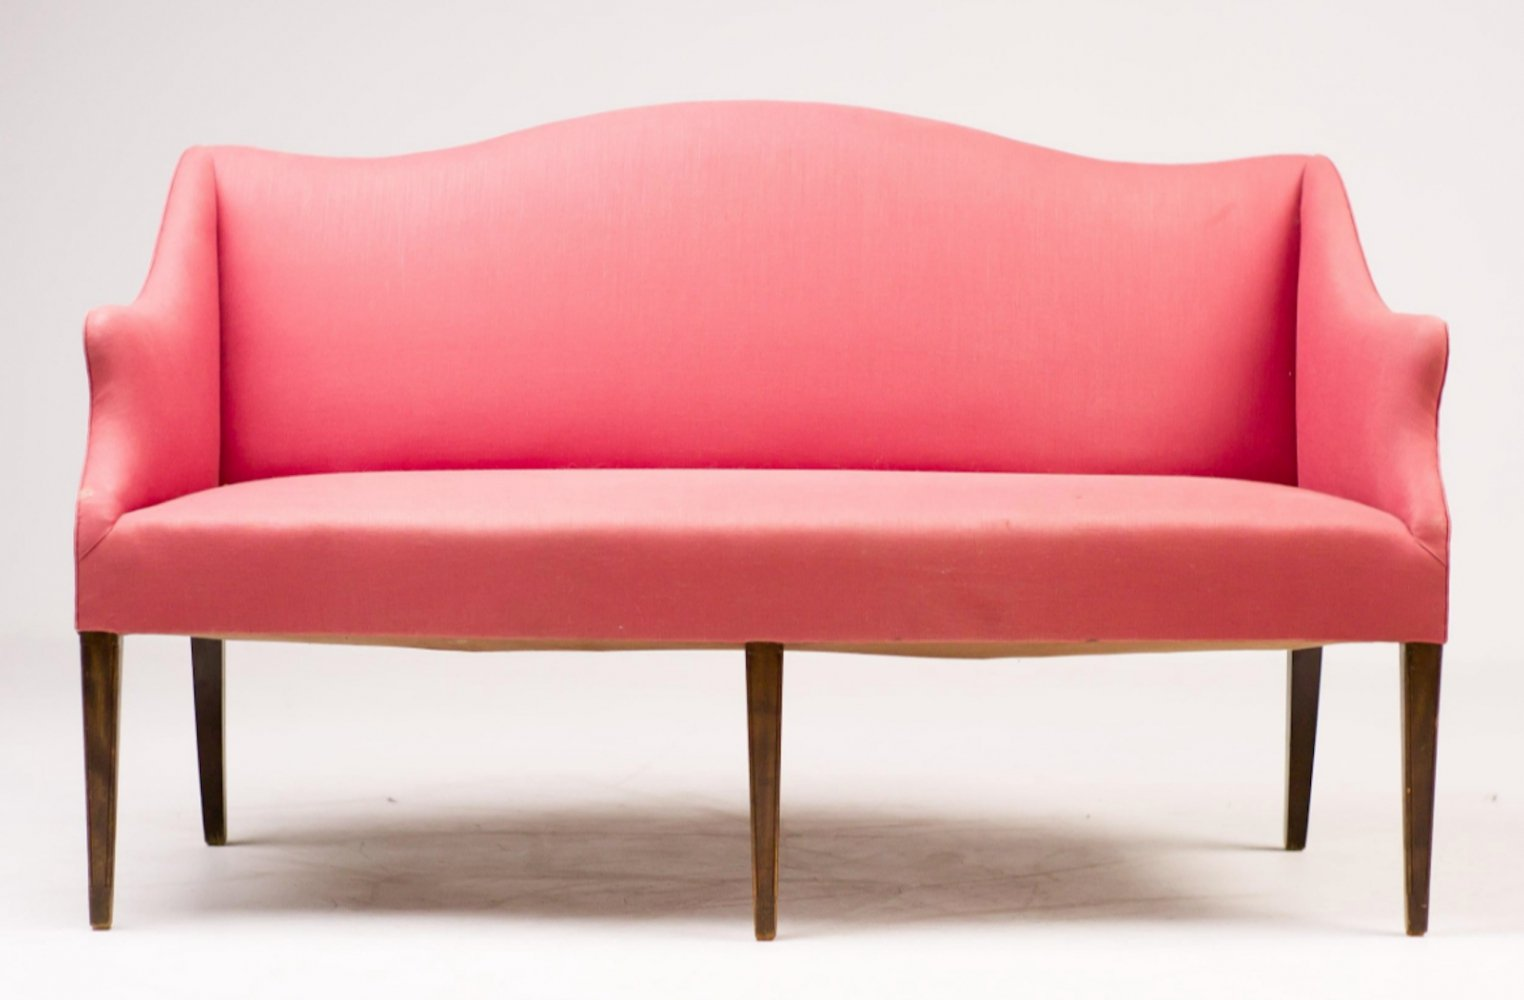 Danish Architectural sofa from 1950